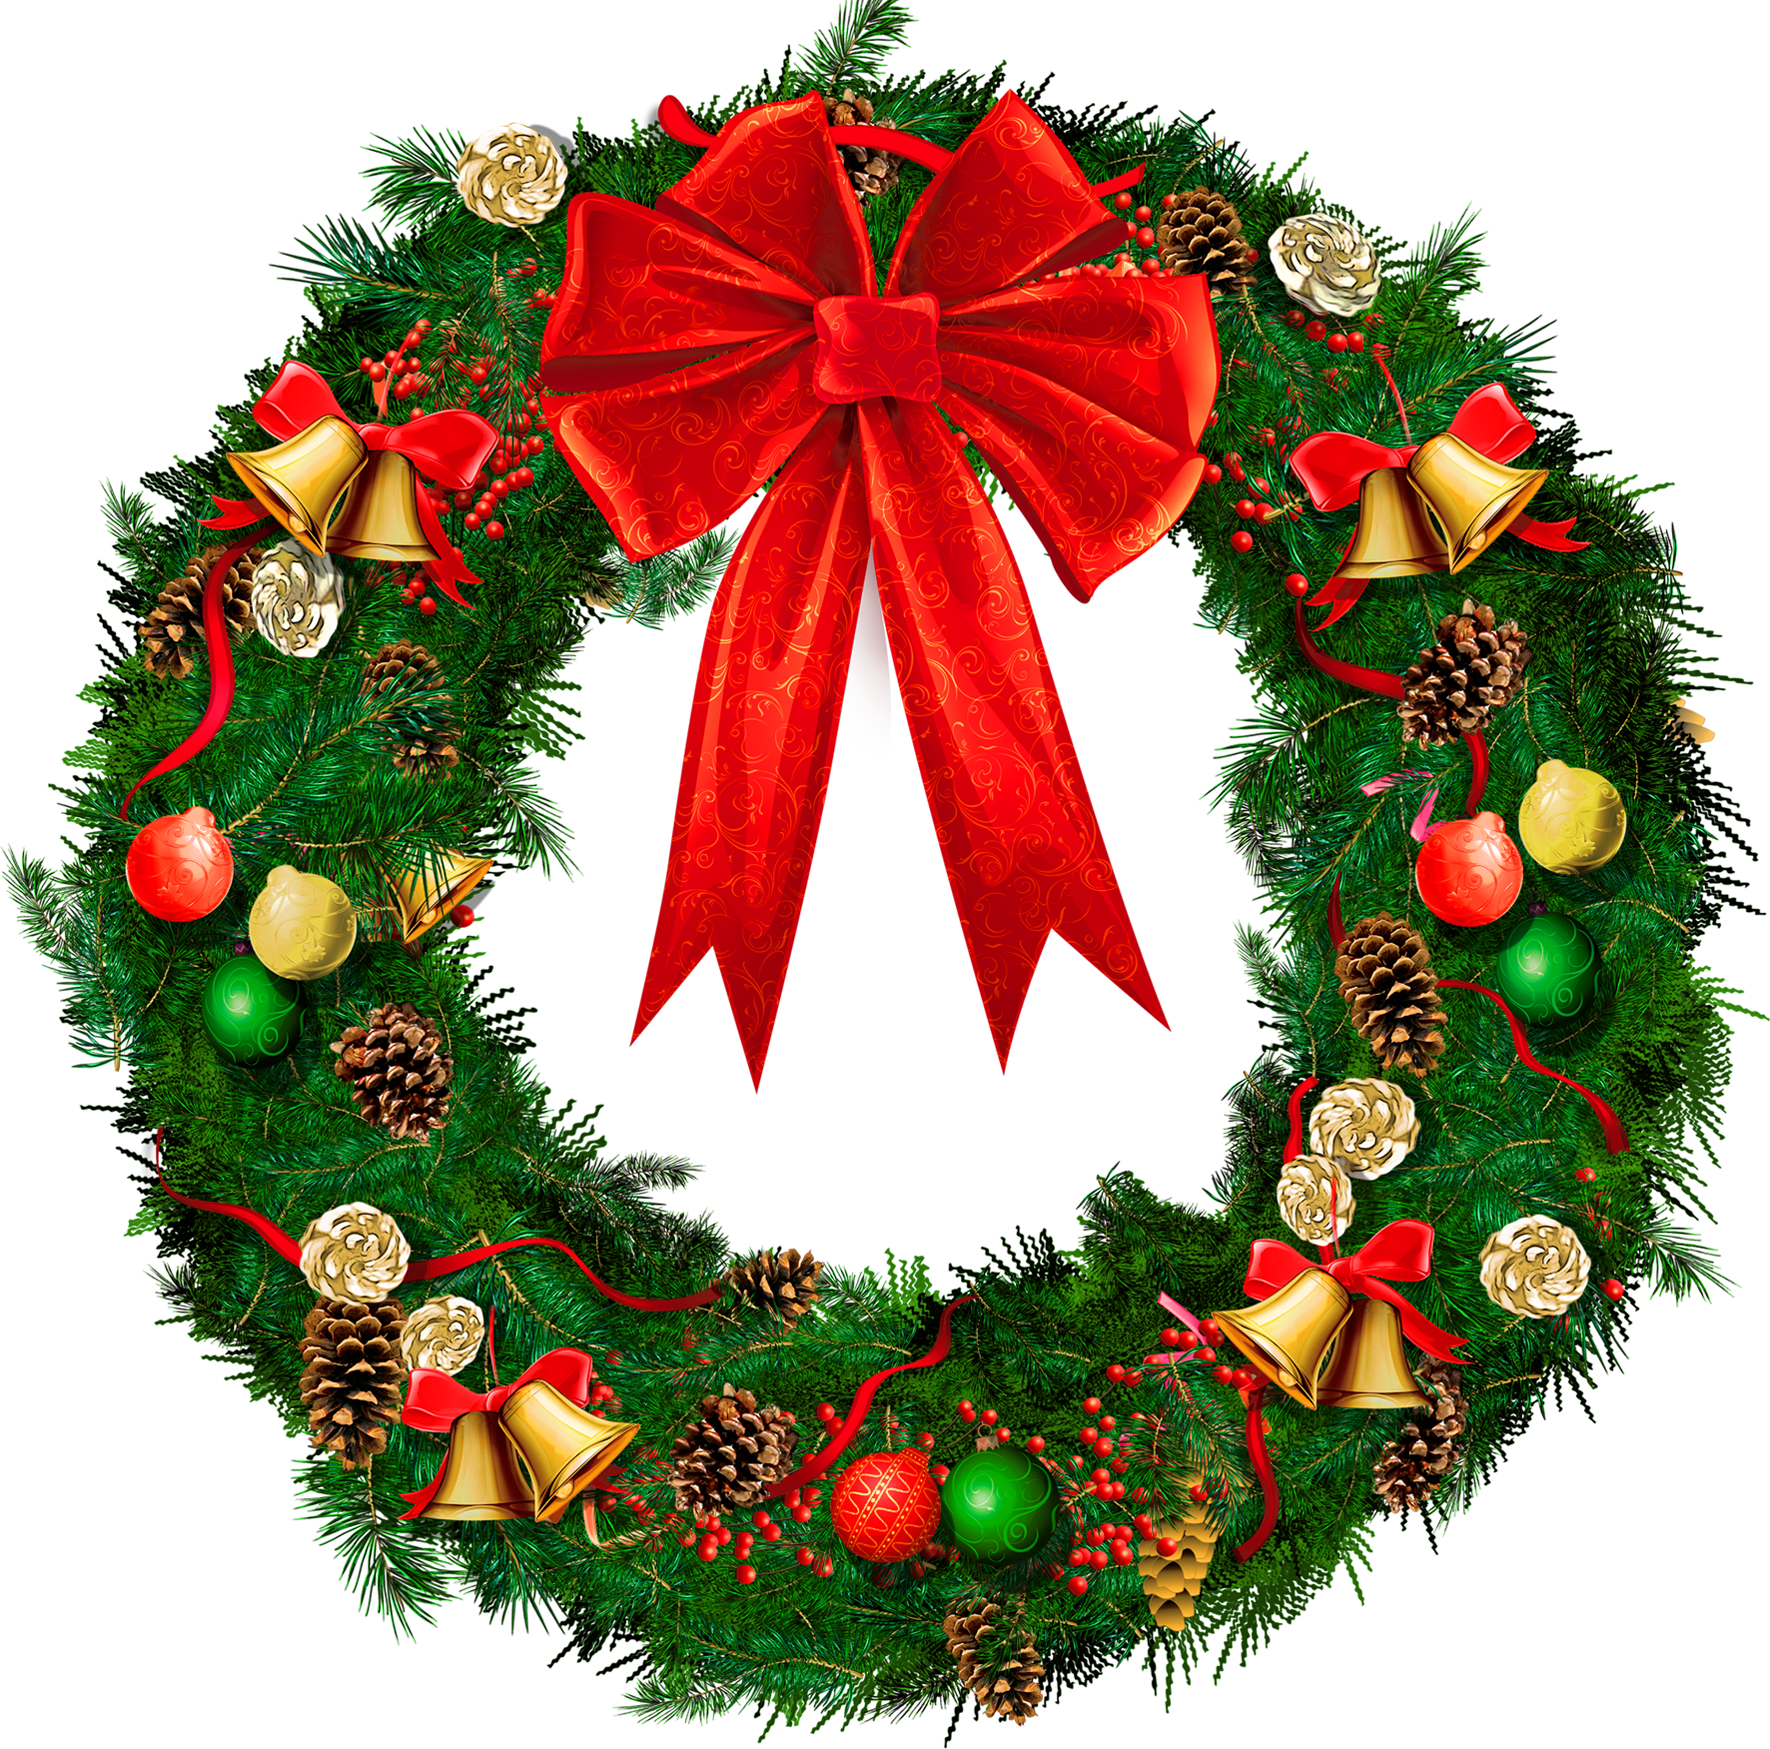 13 Holiday Wreath Clip Art Free Cliparts-13 Holiday Wreath Clip Art Free Cliparts That You Can Download To You-0